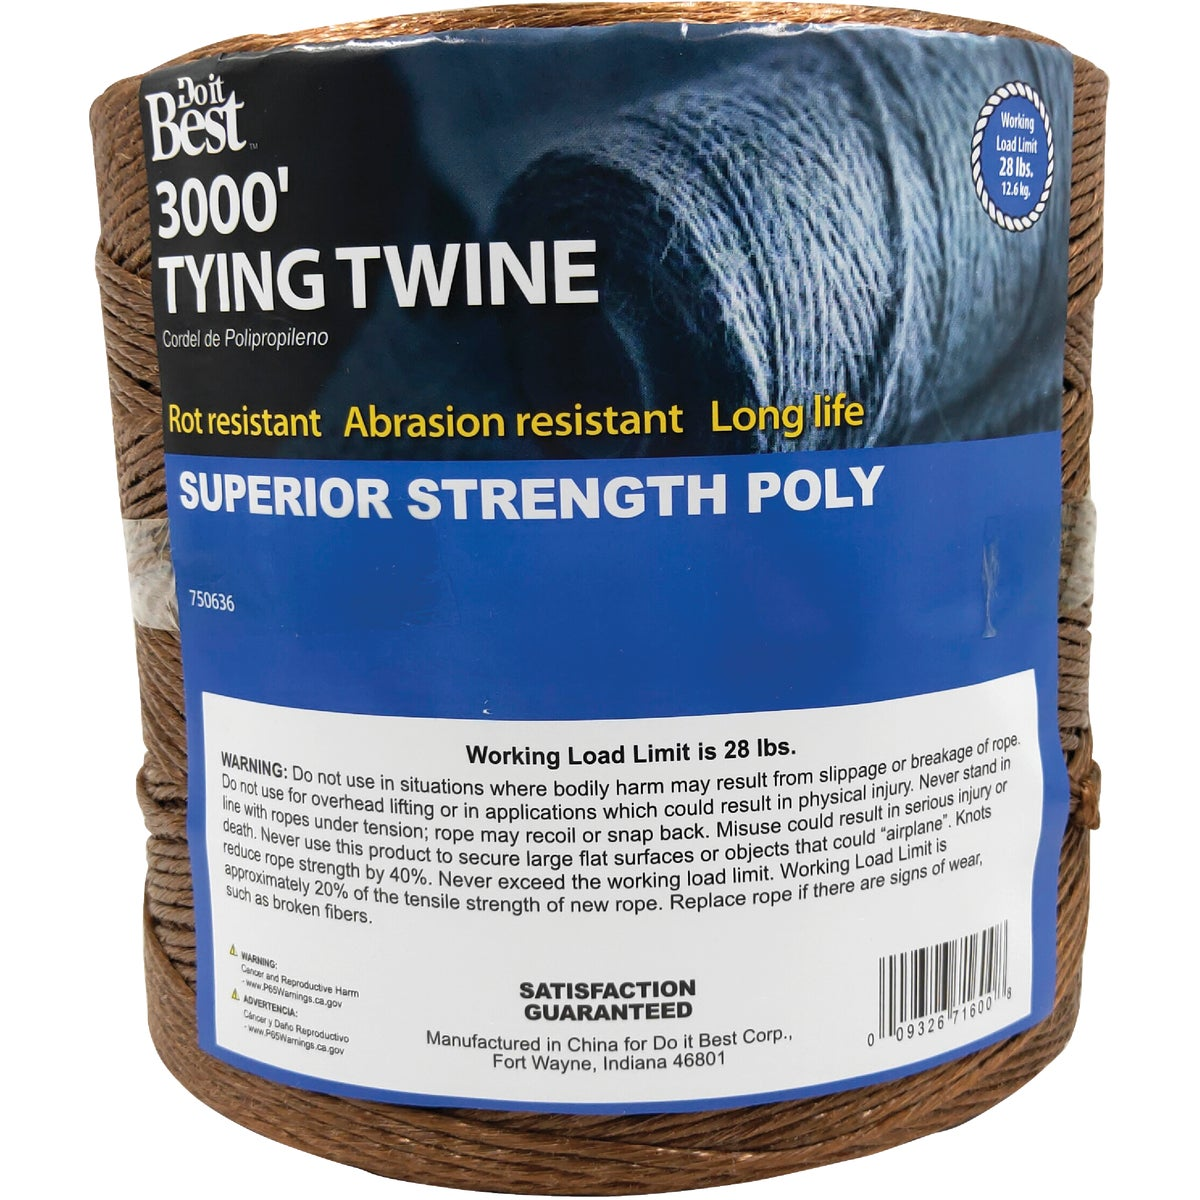 3000' TYING TWINE - 750636 by Do it Best